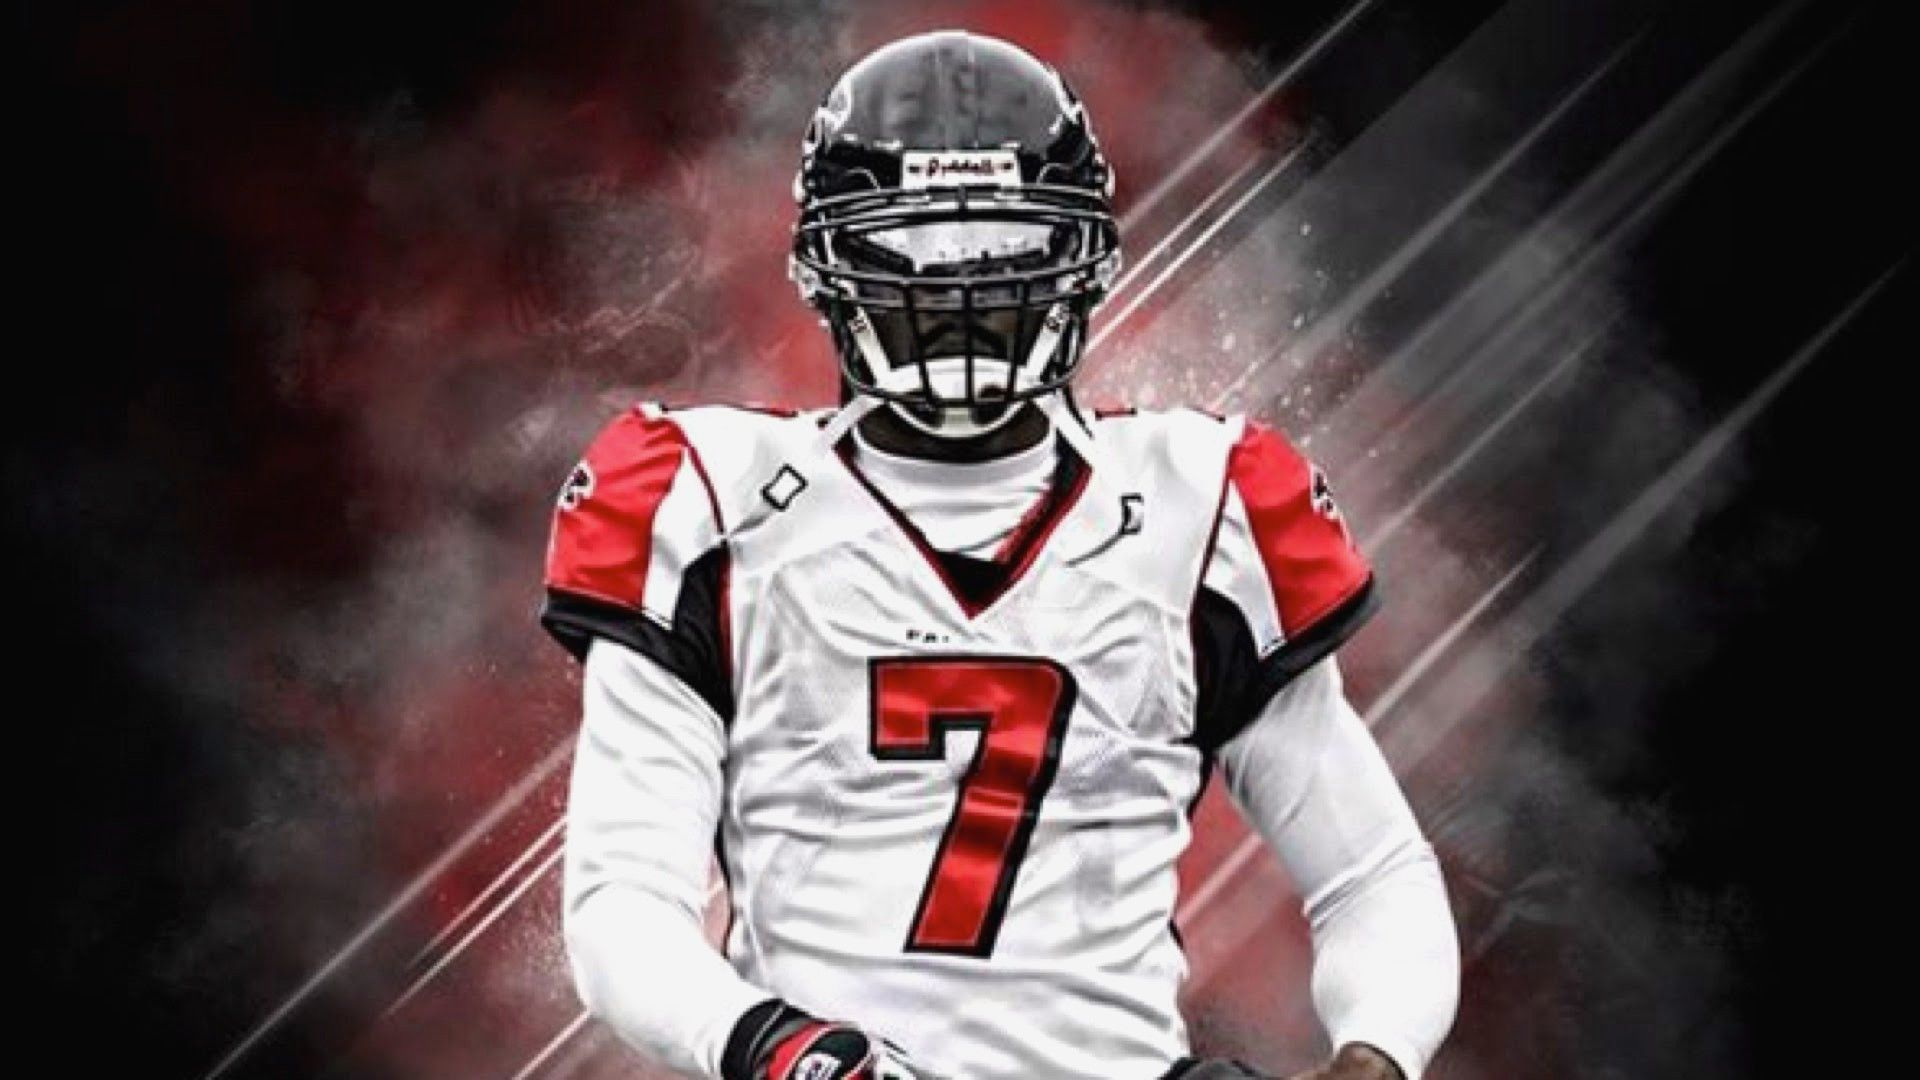 Michael Vick Wallpaper Atlanta Falcons Wallpaper Michael Vick Atlanta Falcons